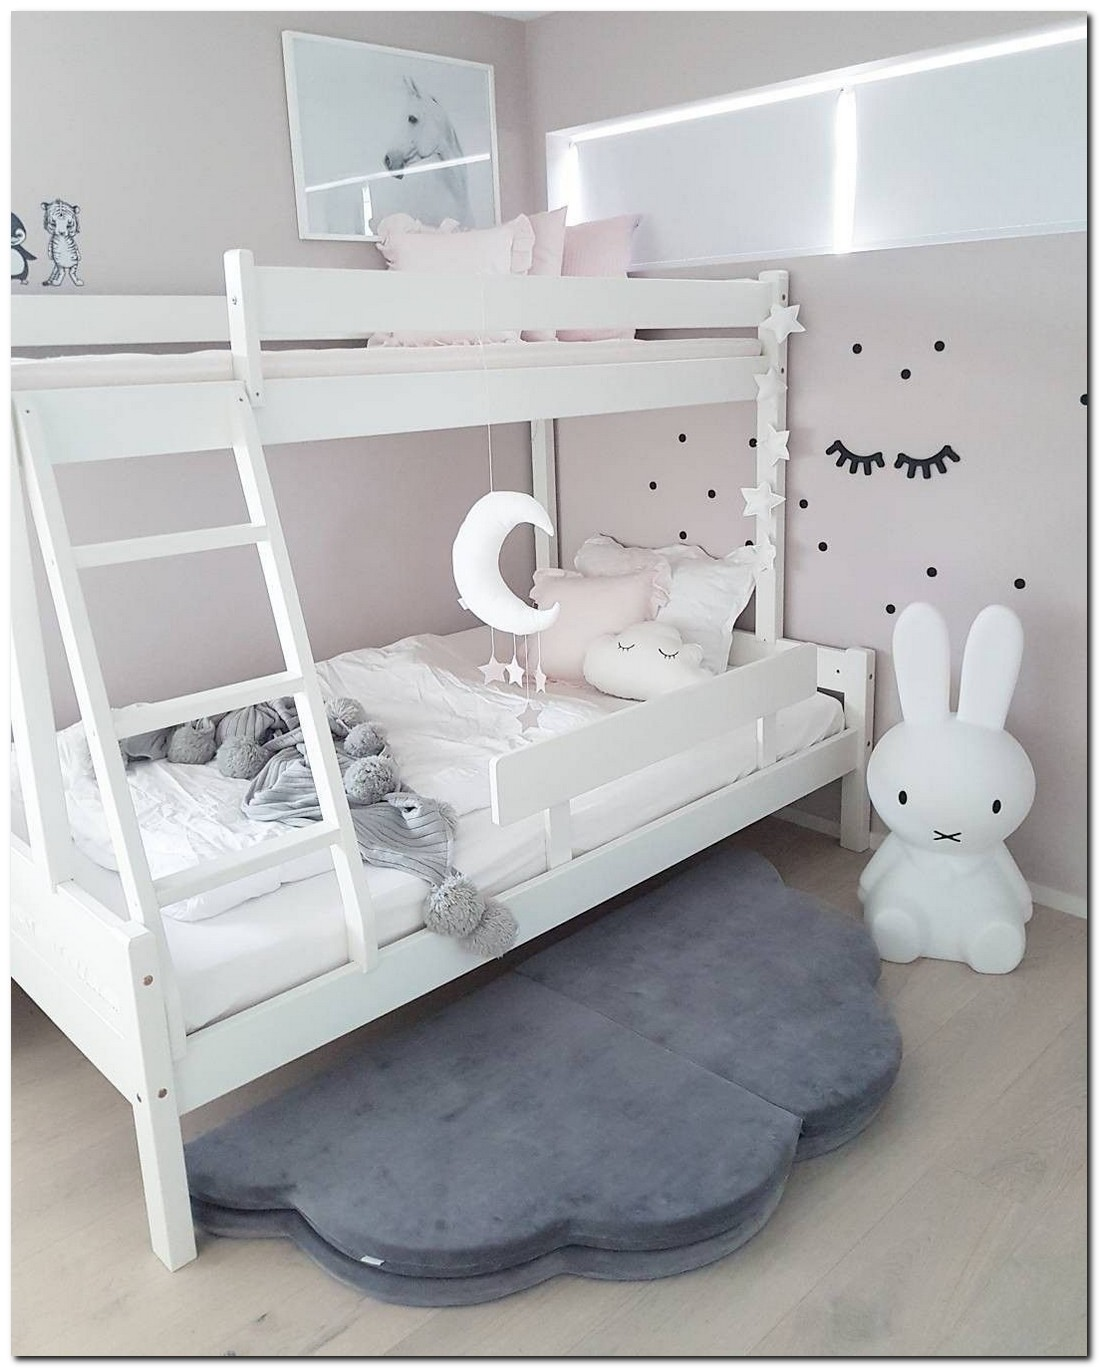 How to successfully choose bunk beds for kids 15